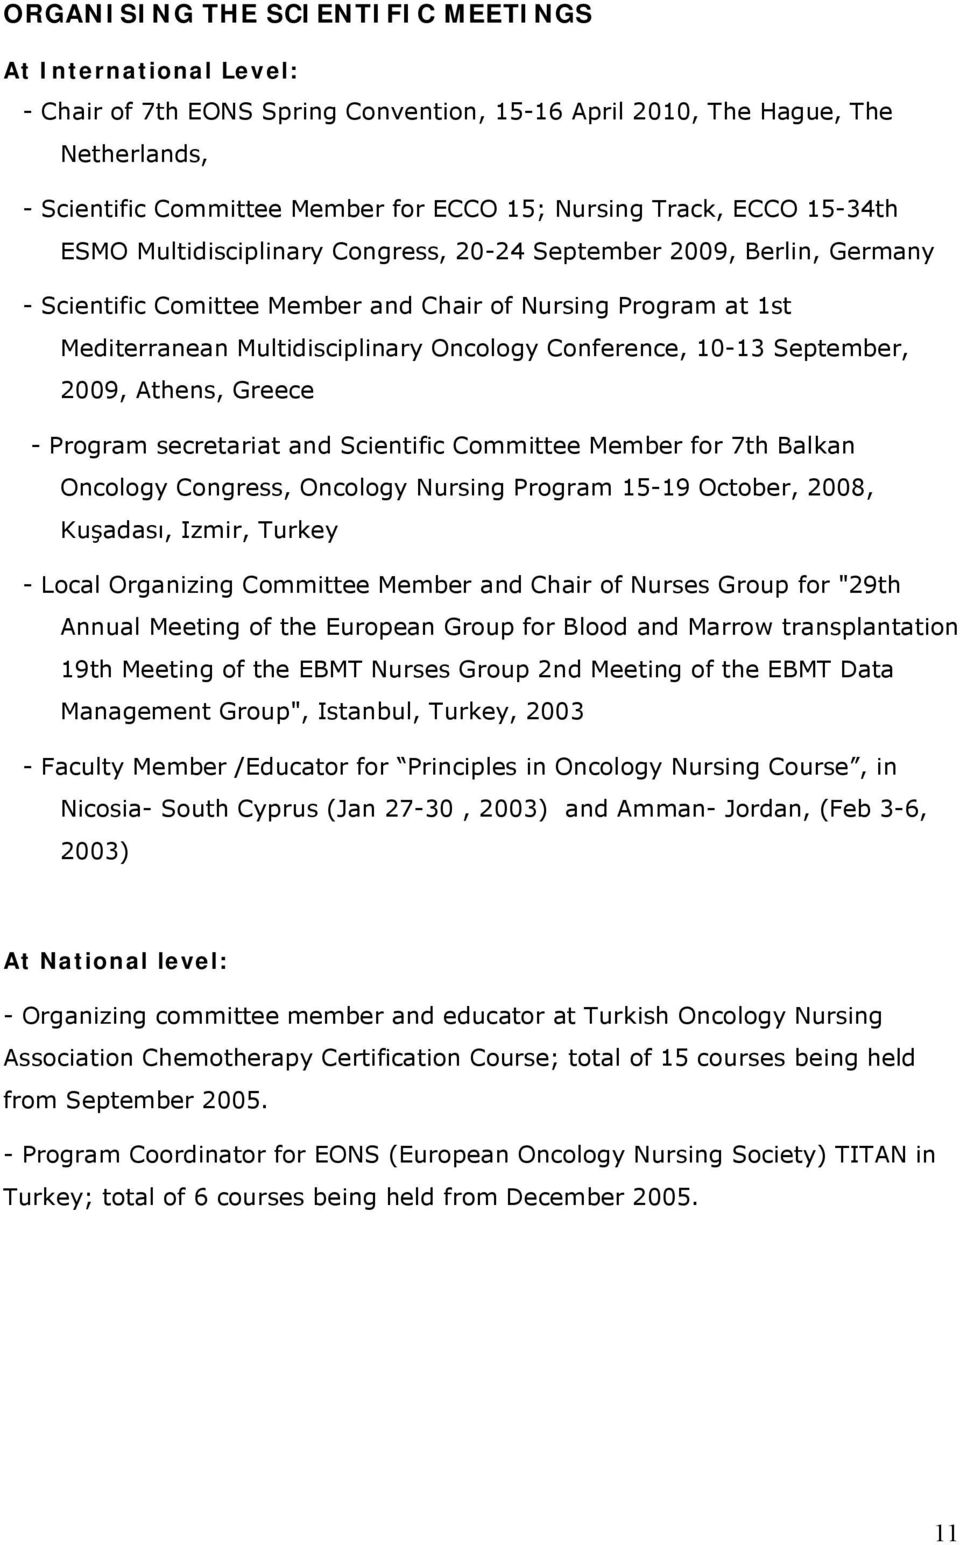 Conference, 10-13 September, 2009, Athens, Greece - Program secretariat and Scientific Committee Member for 7th Balkan Oncology Congress, Oncology Nursing Program 15-19 October, 2008, Kuşadası,